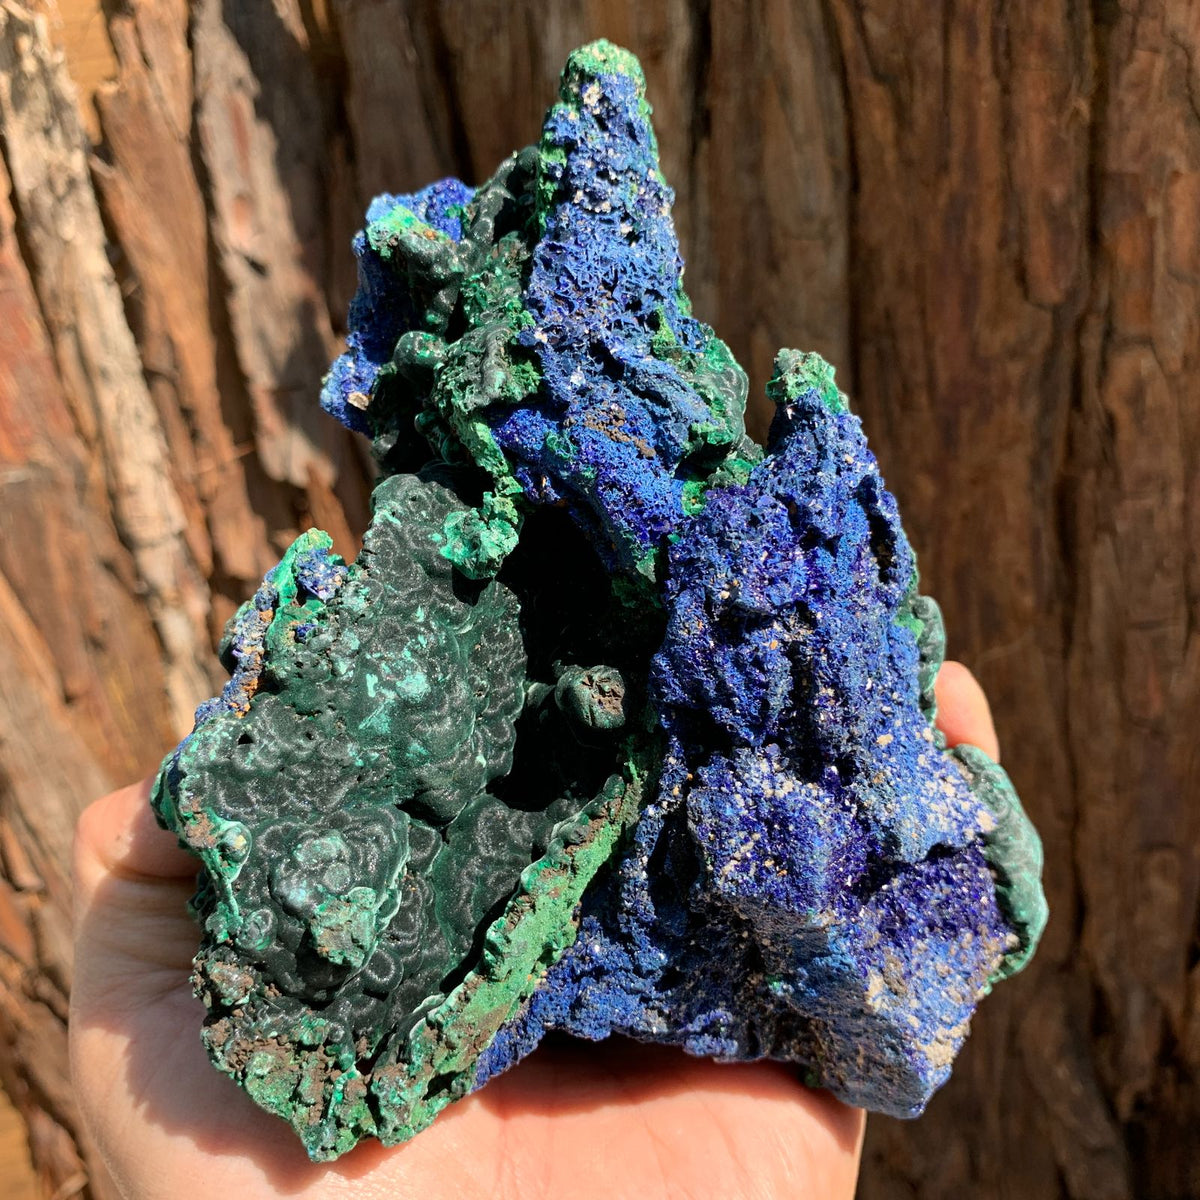 14.5cm 858g Azurite from Sepon Mine, Laos